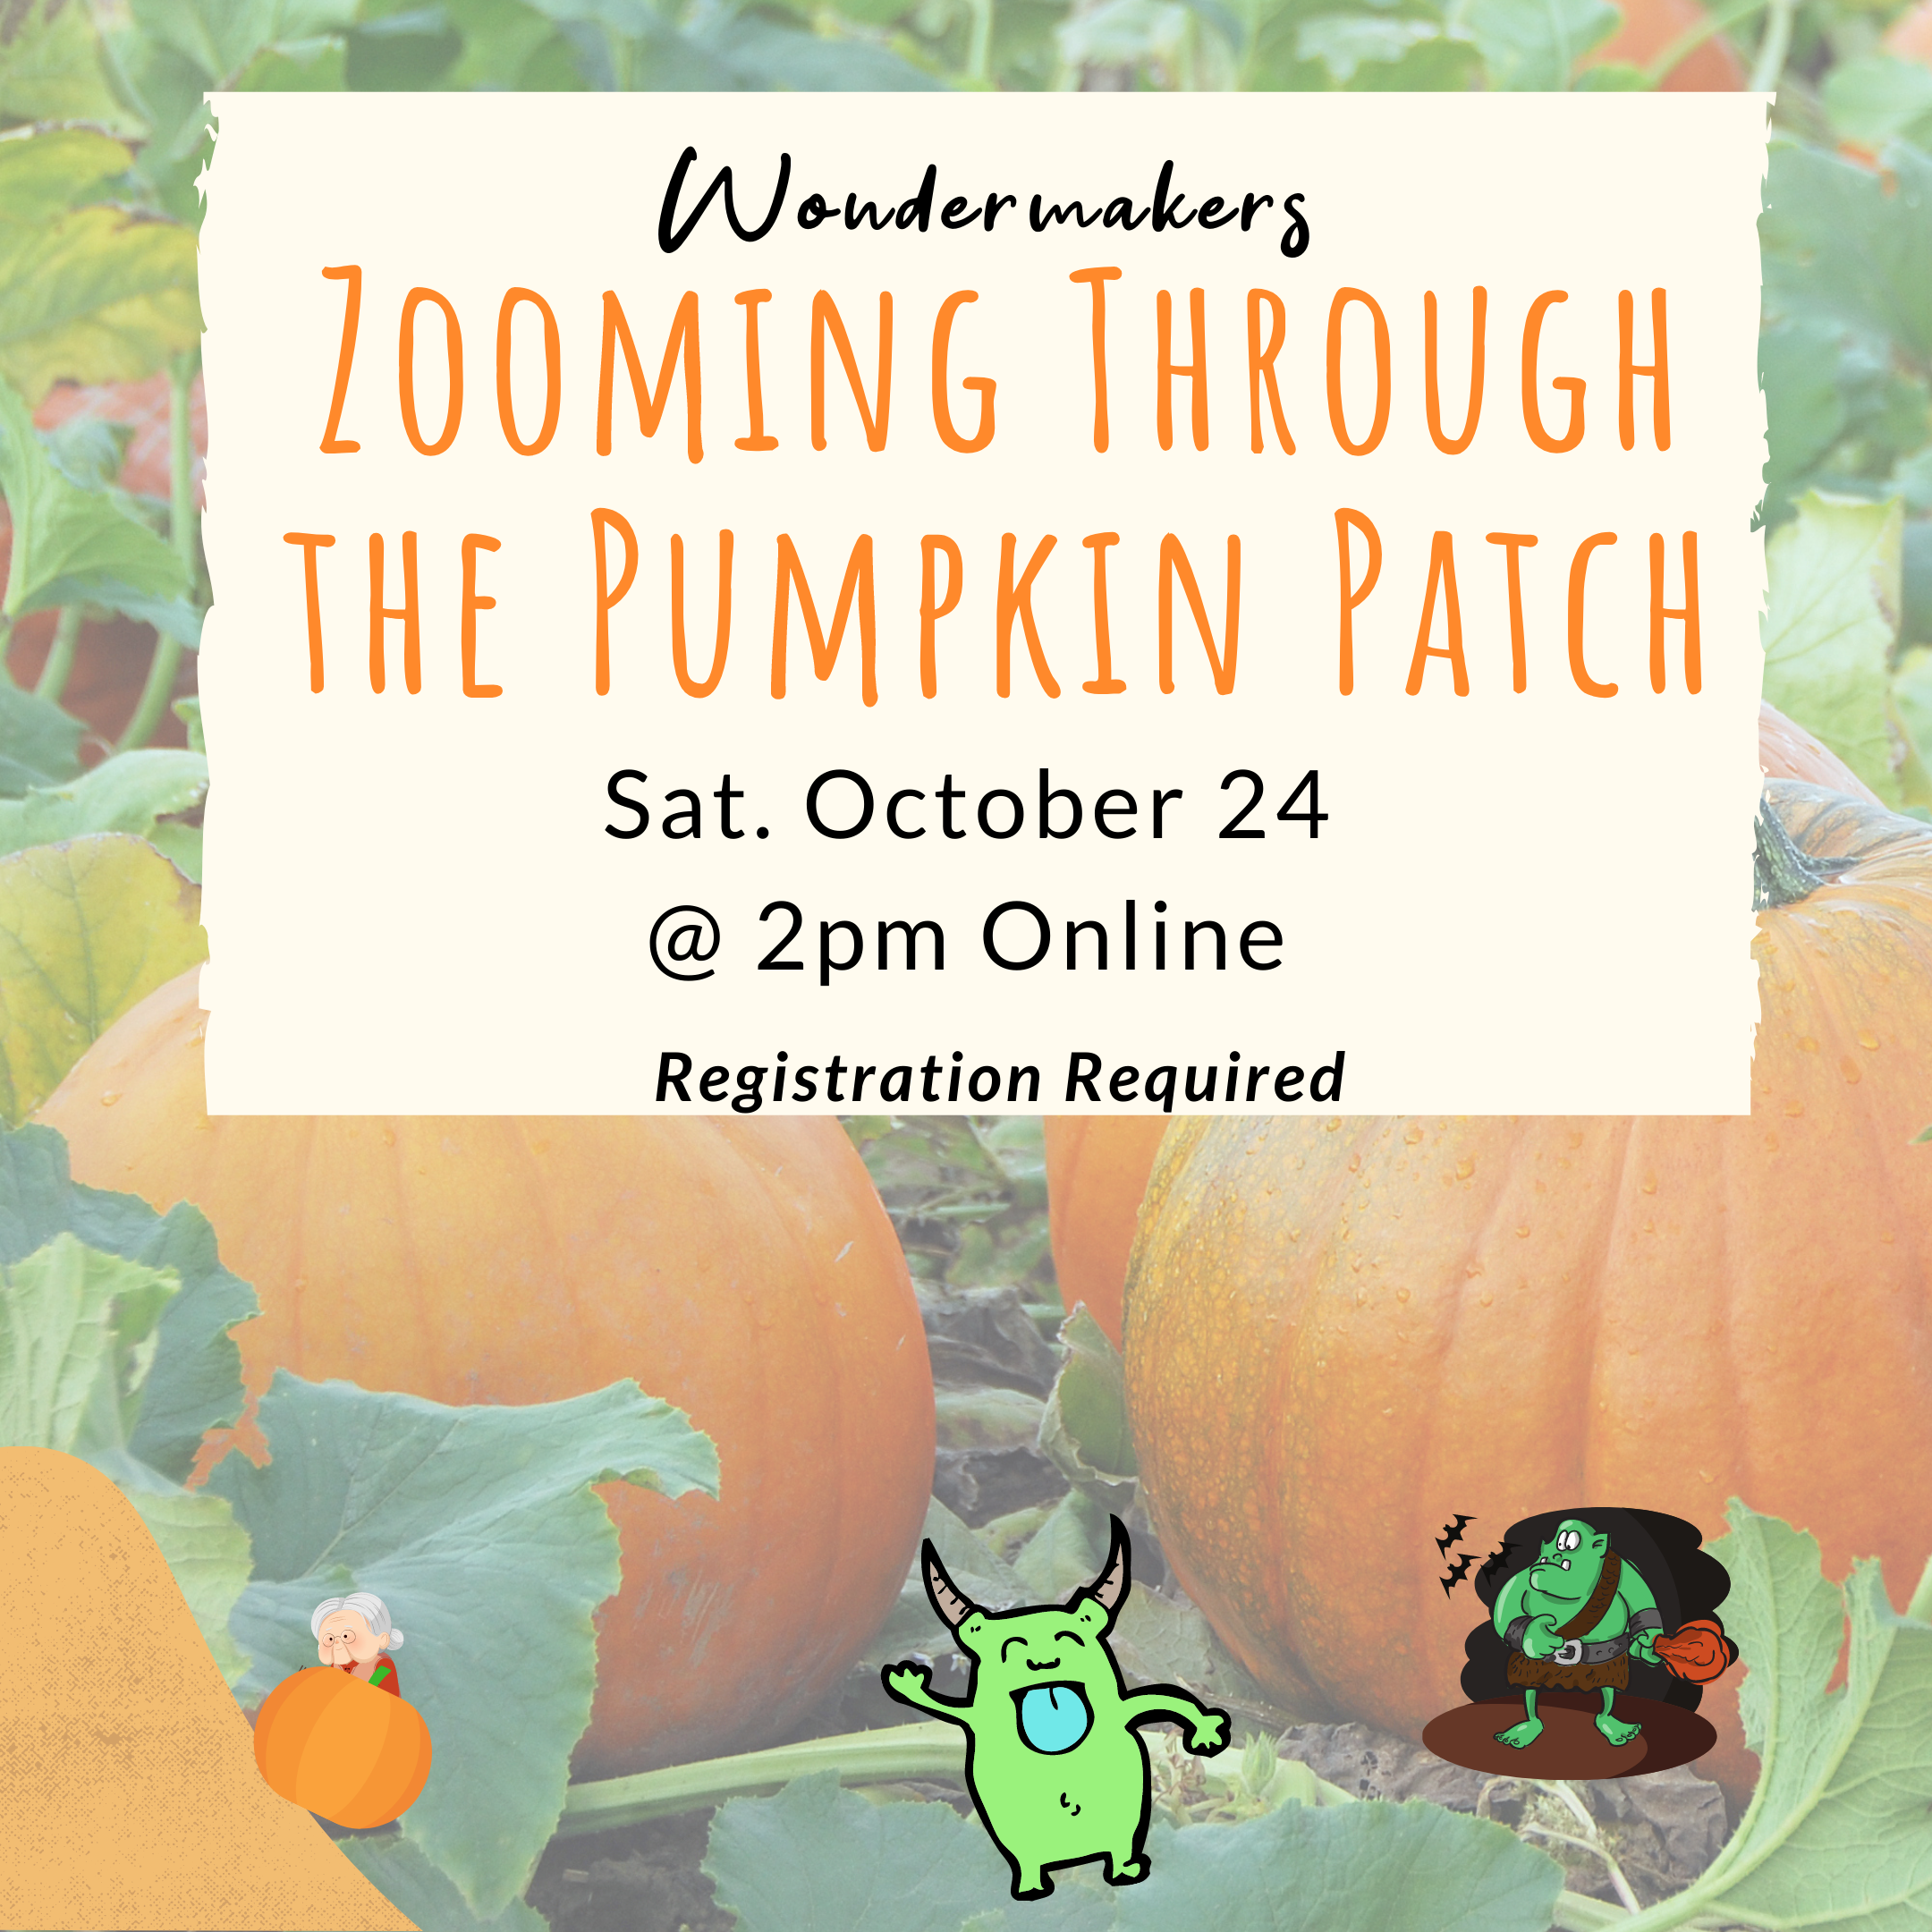 Wondermakers: Zooming Through the Pumpkin Patch